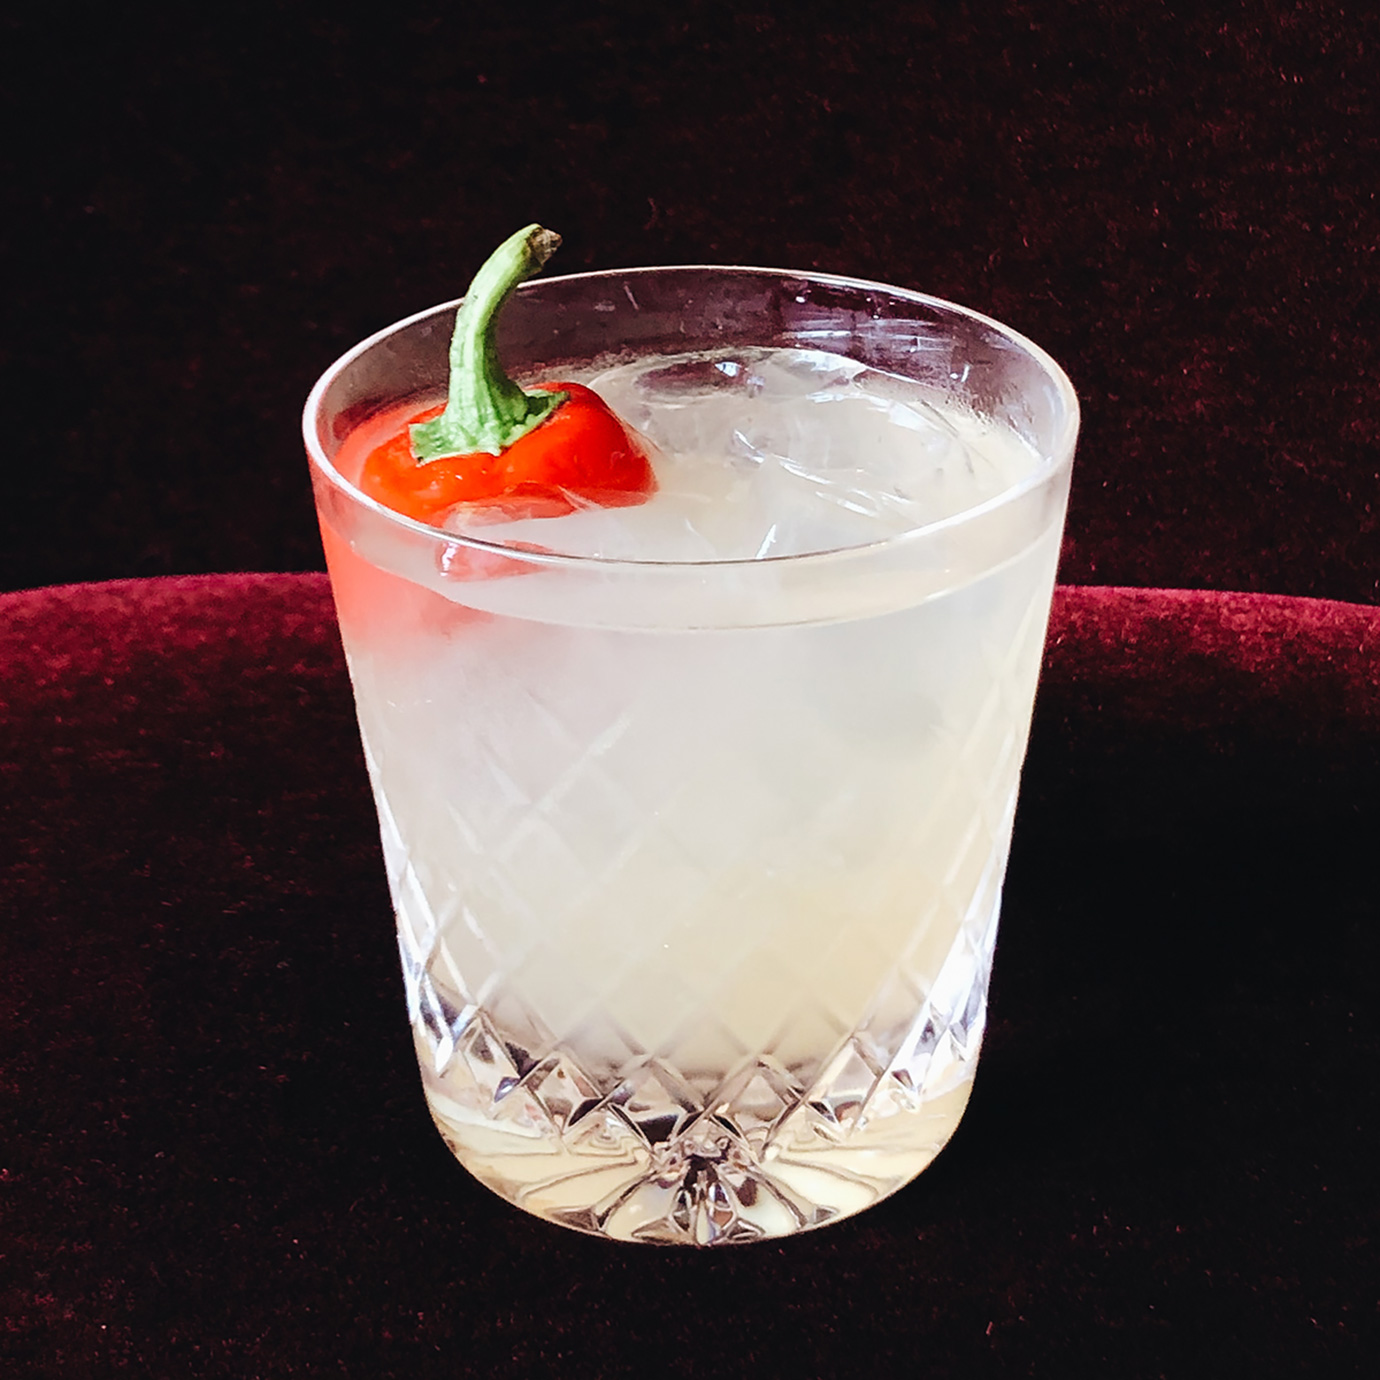 A cocktail with a piece of red chilli in it.